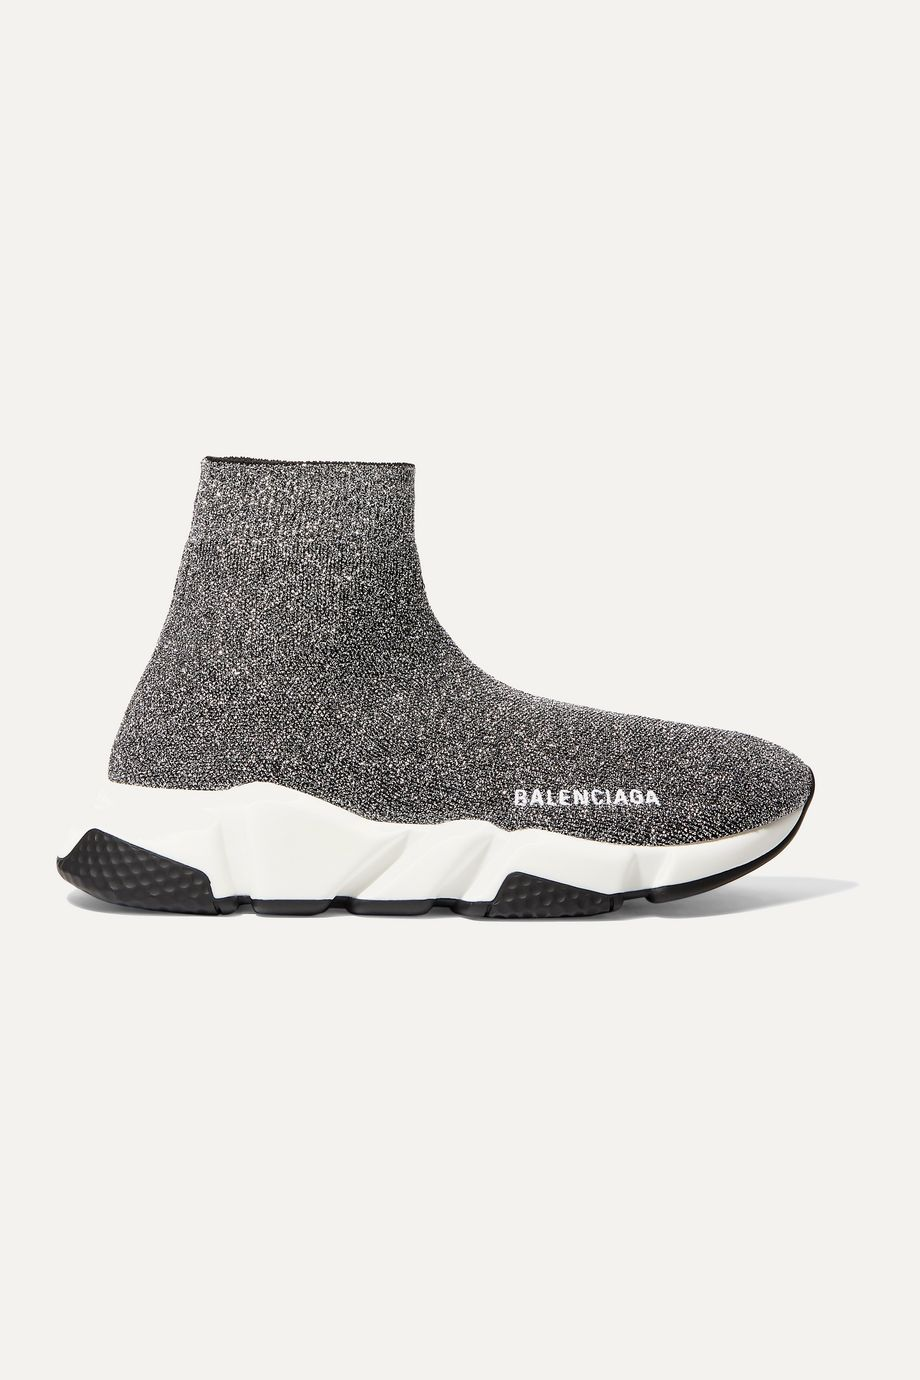 Balenciaga Speed logo-print metallic stretch-knit high-top sneakers